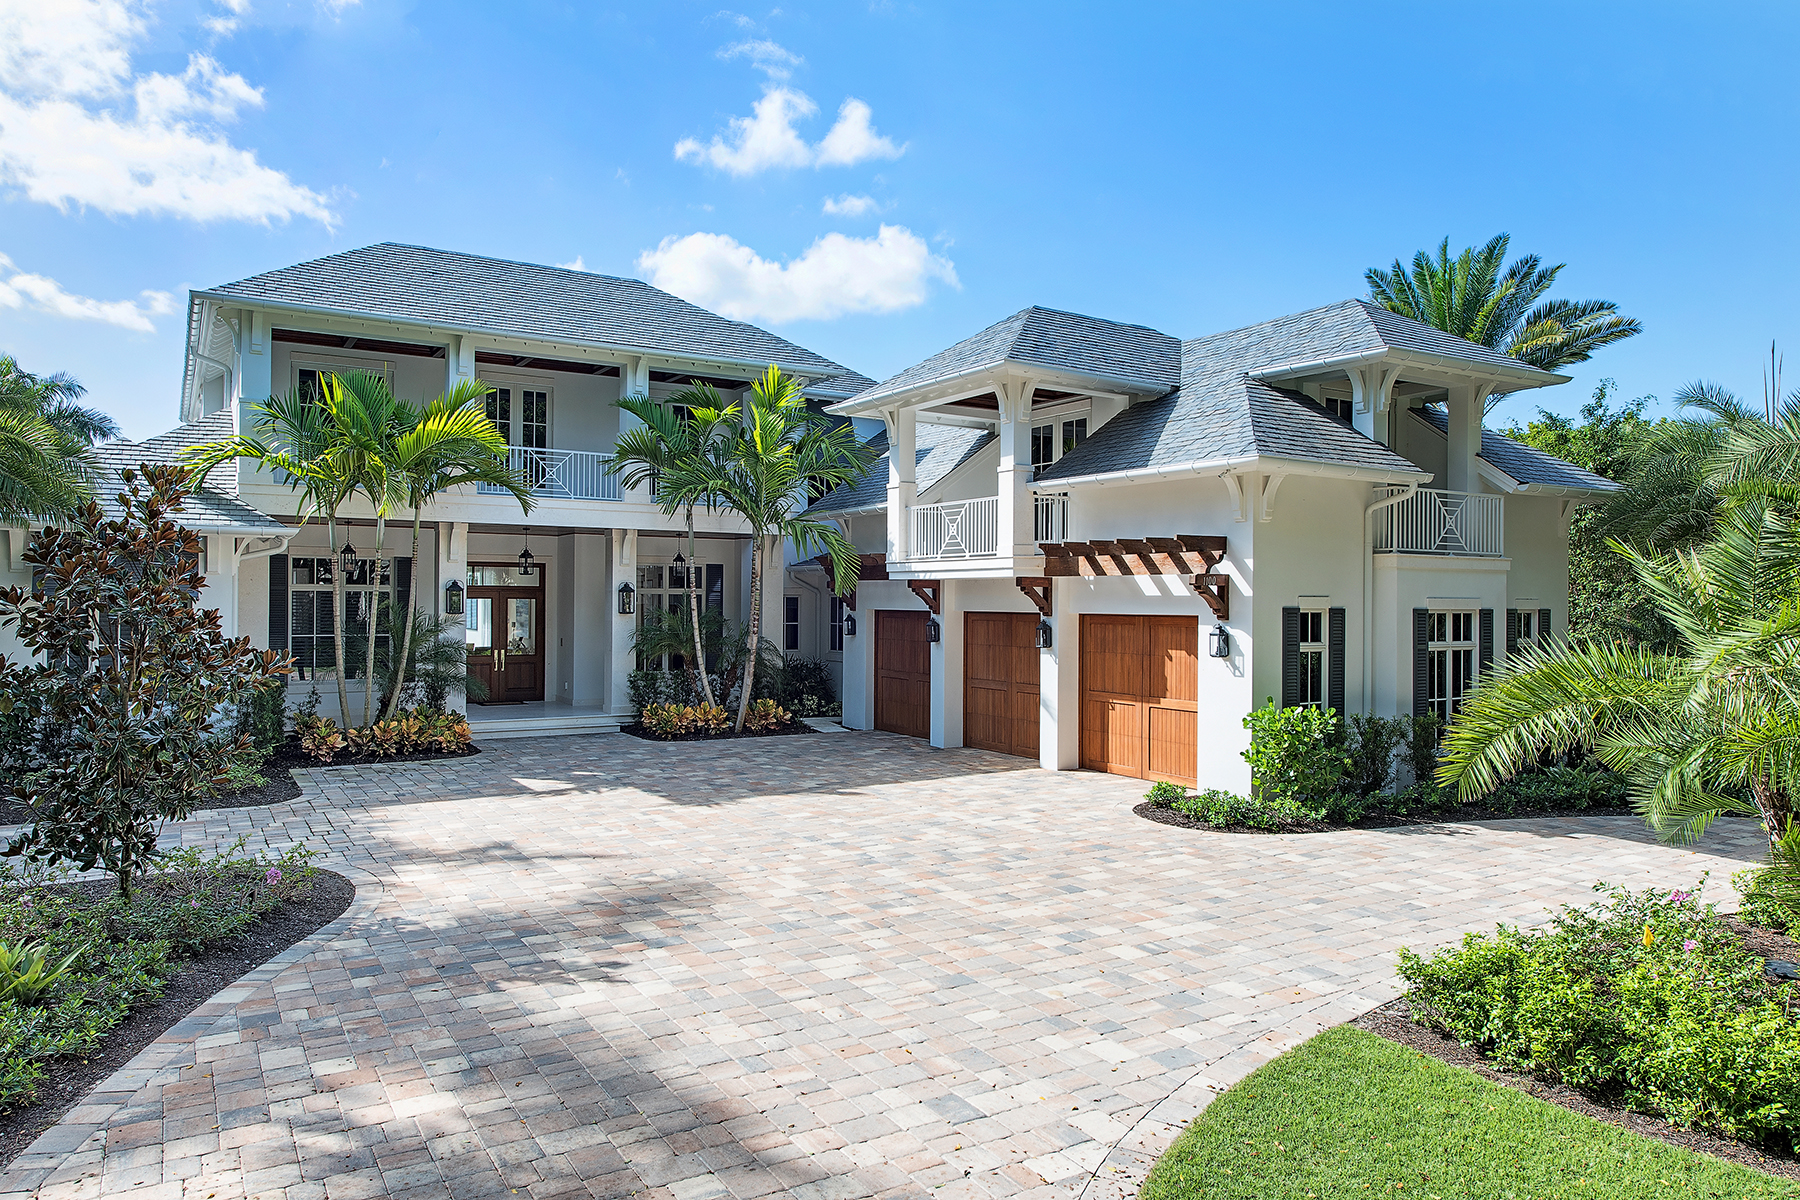 Maison unifamiliale pour l Vente à PORT ROYAL 1100 Galleon Dr Naples, Florida, 34102 États-Unis